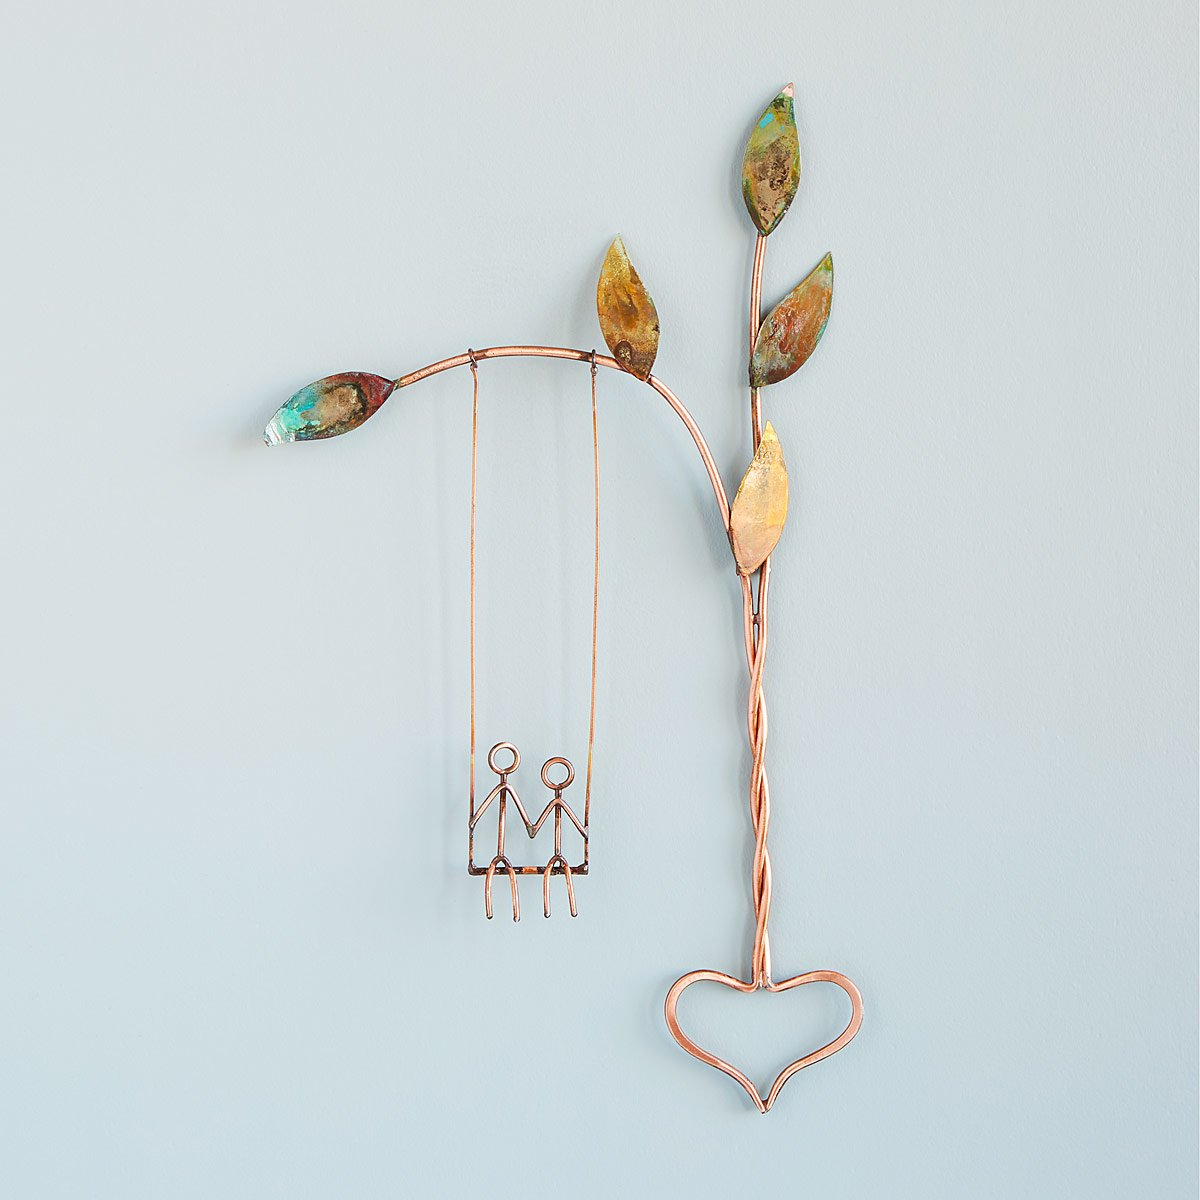 Rooted in Love Swing Sculpture | UncommonGoods